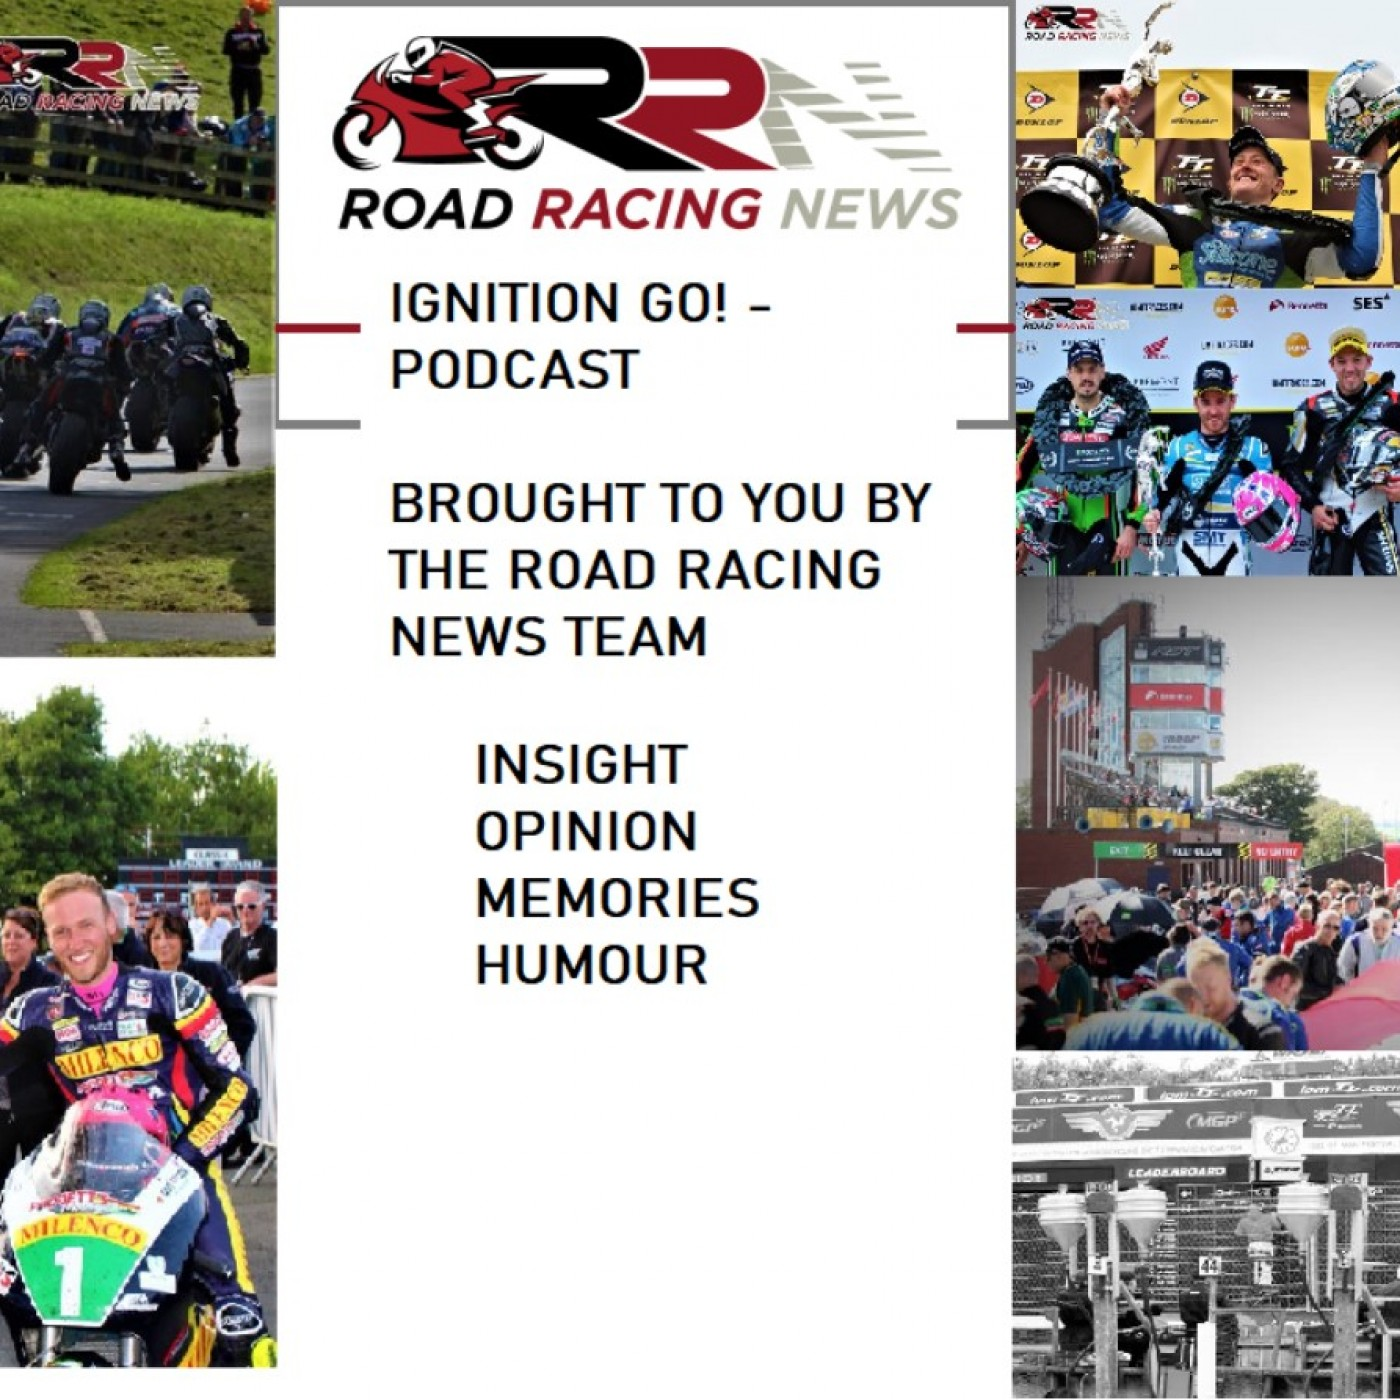 Road Racing News Podcast Series 2 - Episode 5 - News, News, News